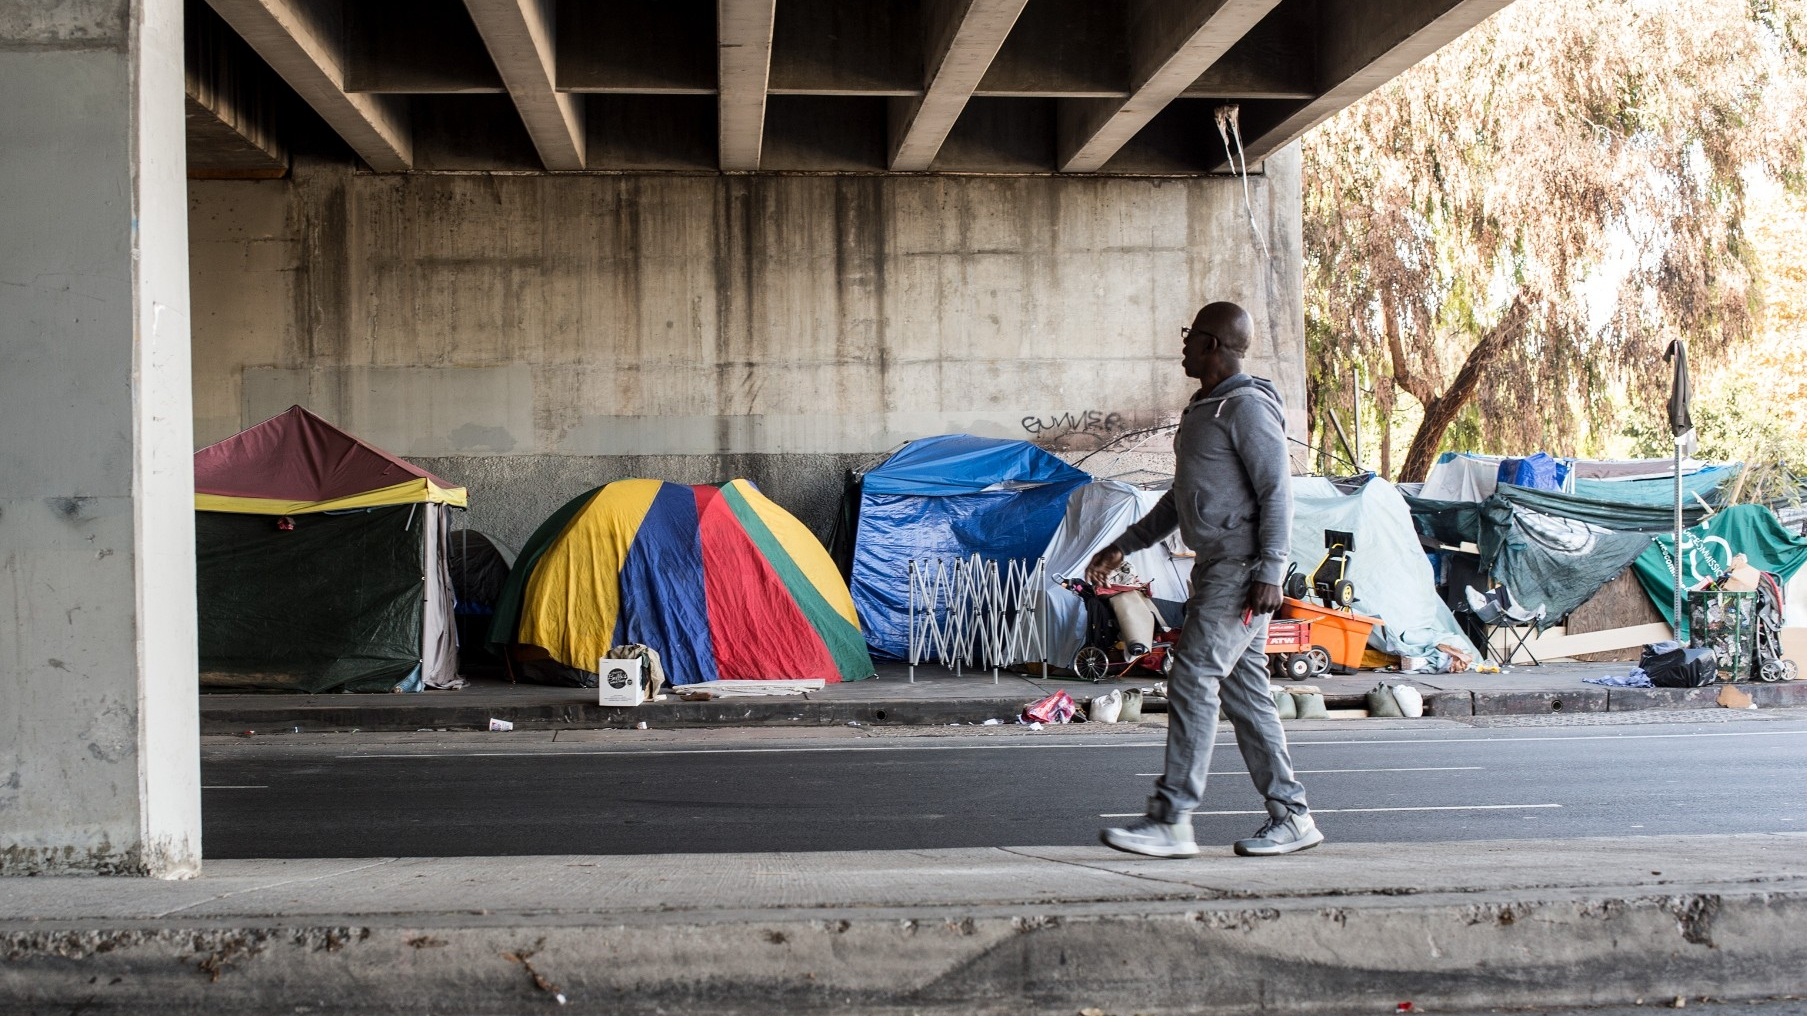 A homeless encampment in West Los Angeles in November 2020, photo by Diane Baldwin/RAND Corporation